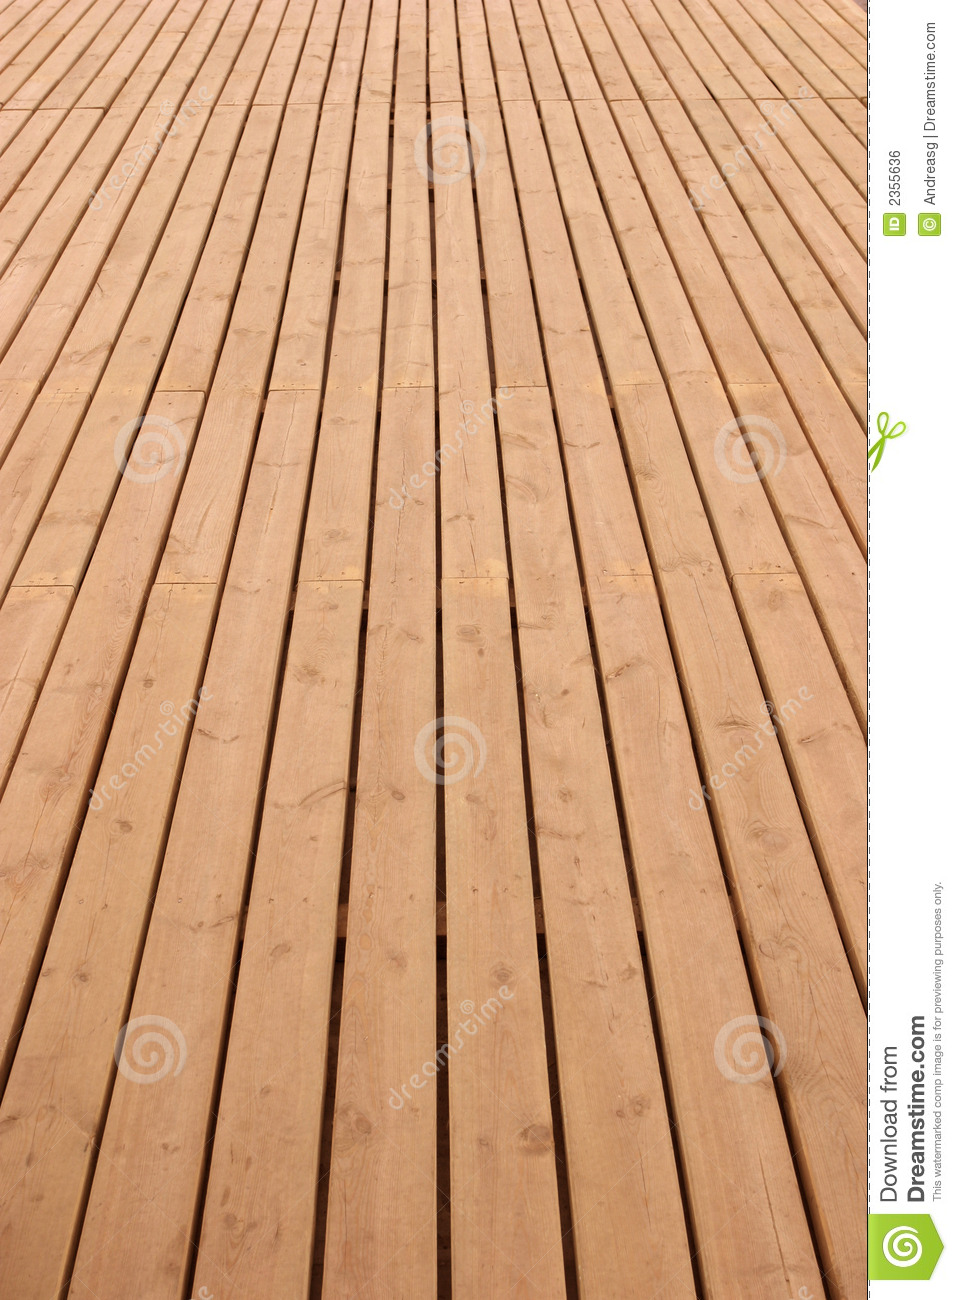 Wooden deck perspective royalty free stock image image for Wooden balcony